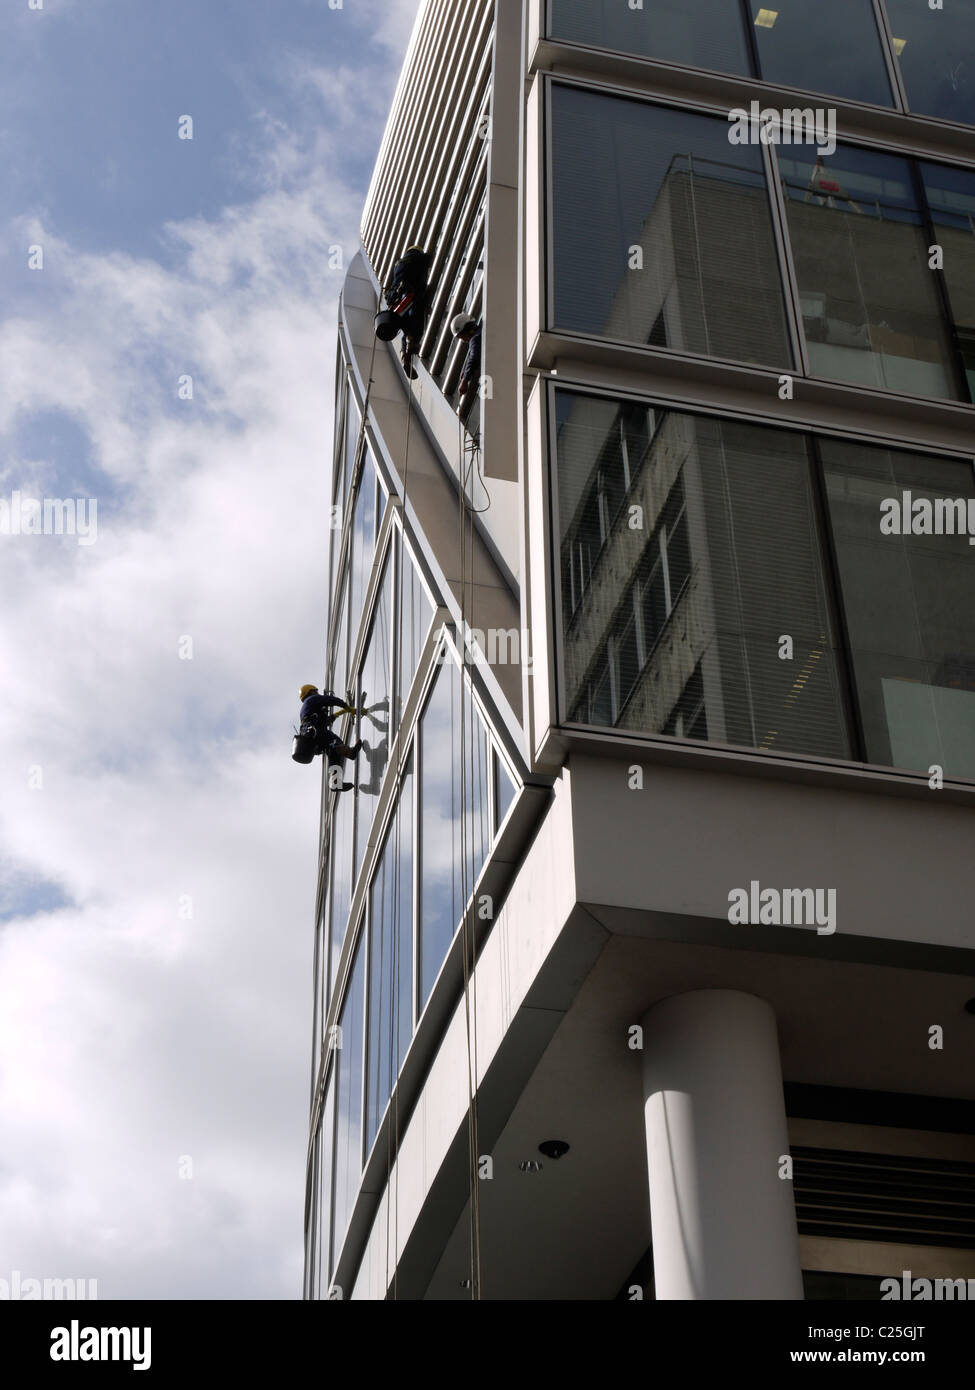 moor house moorhouse moorgate being cleaned by window cleaners London UK - Stock Image